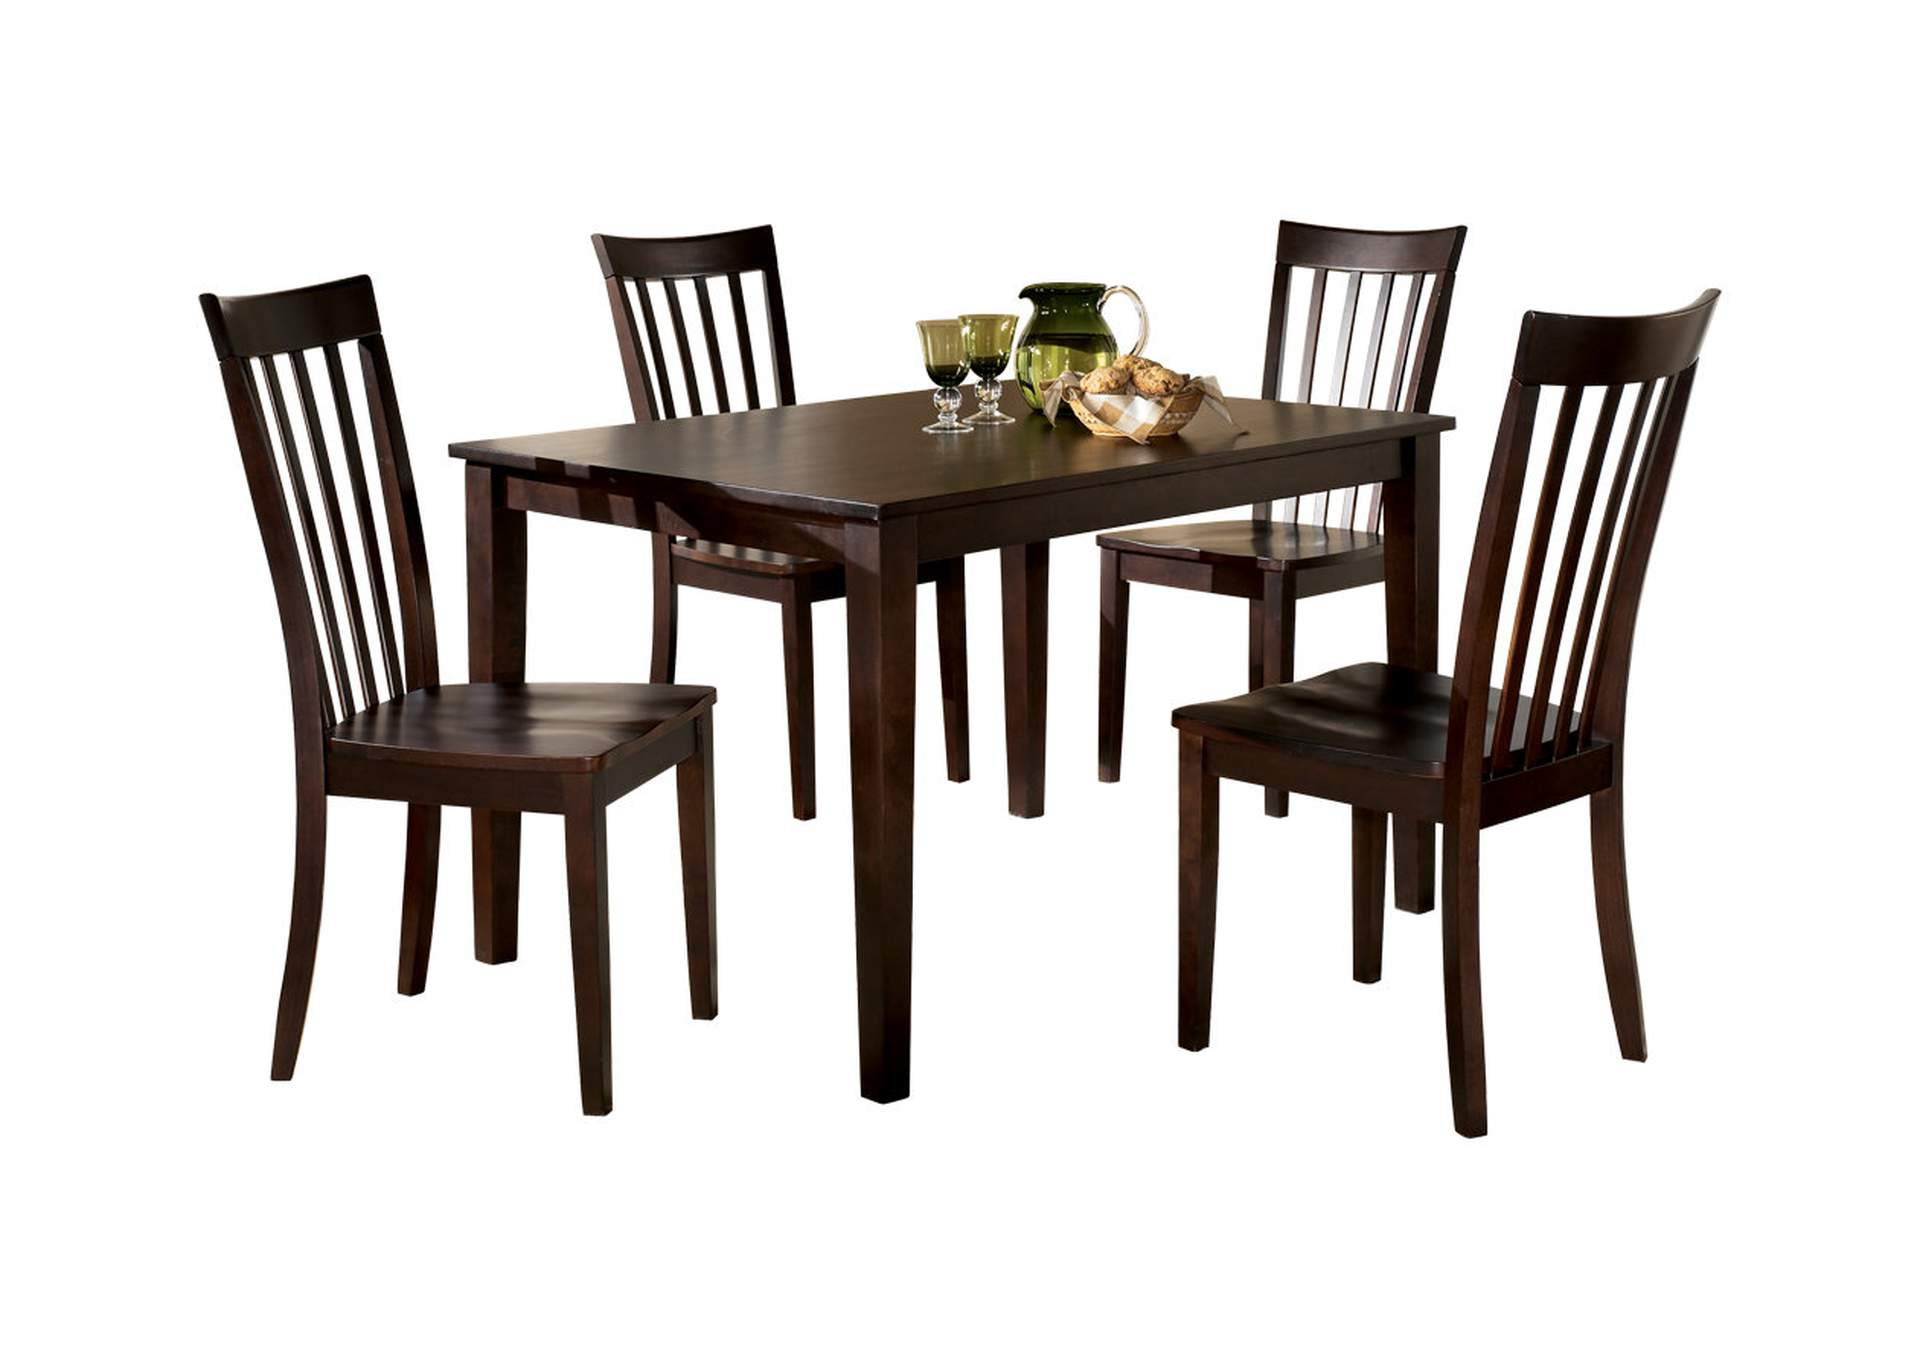 Hyland Dining Room Table and Chairs (Set of 5),Ashley